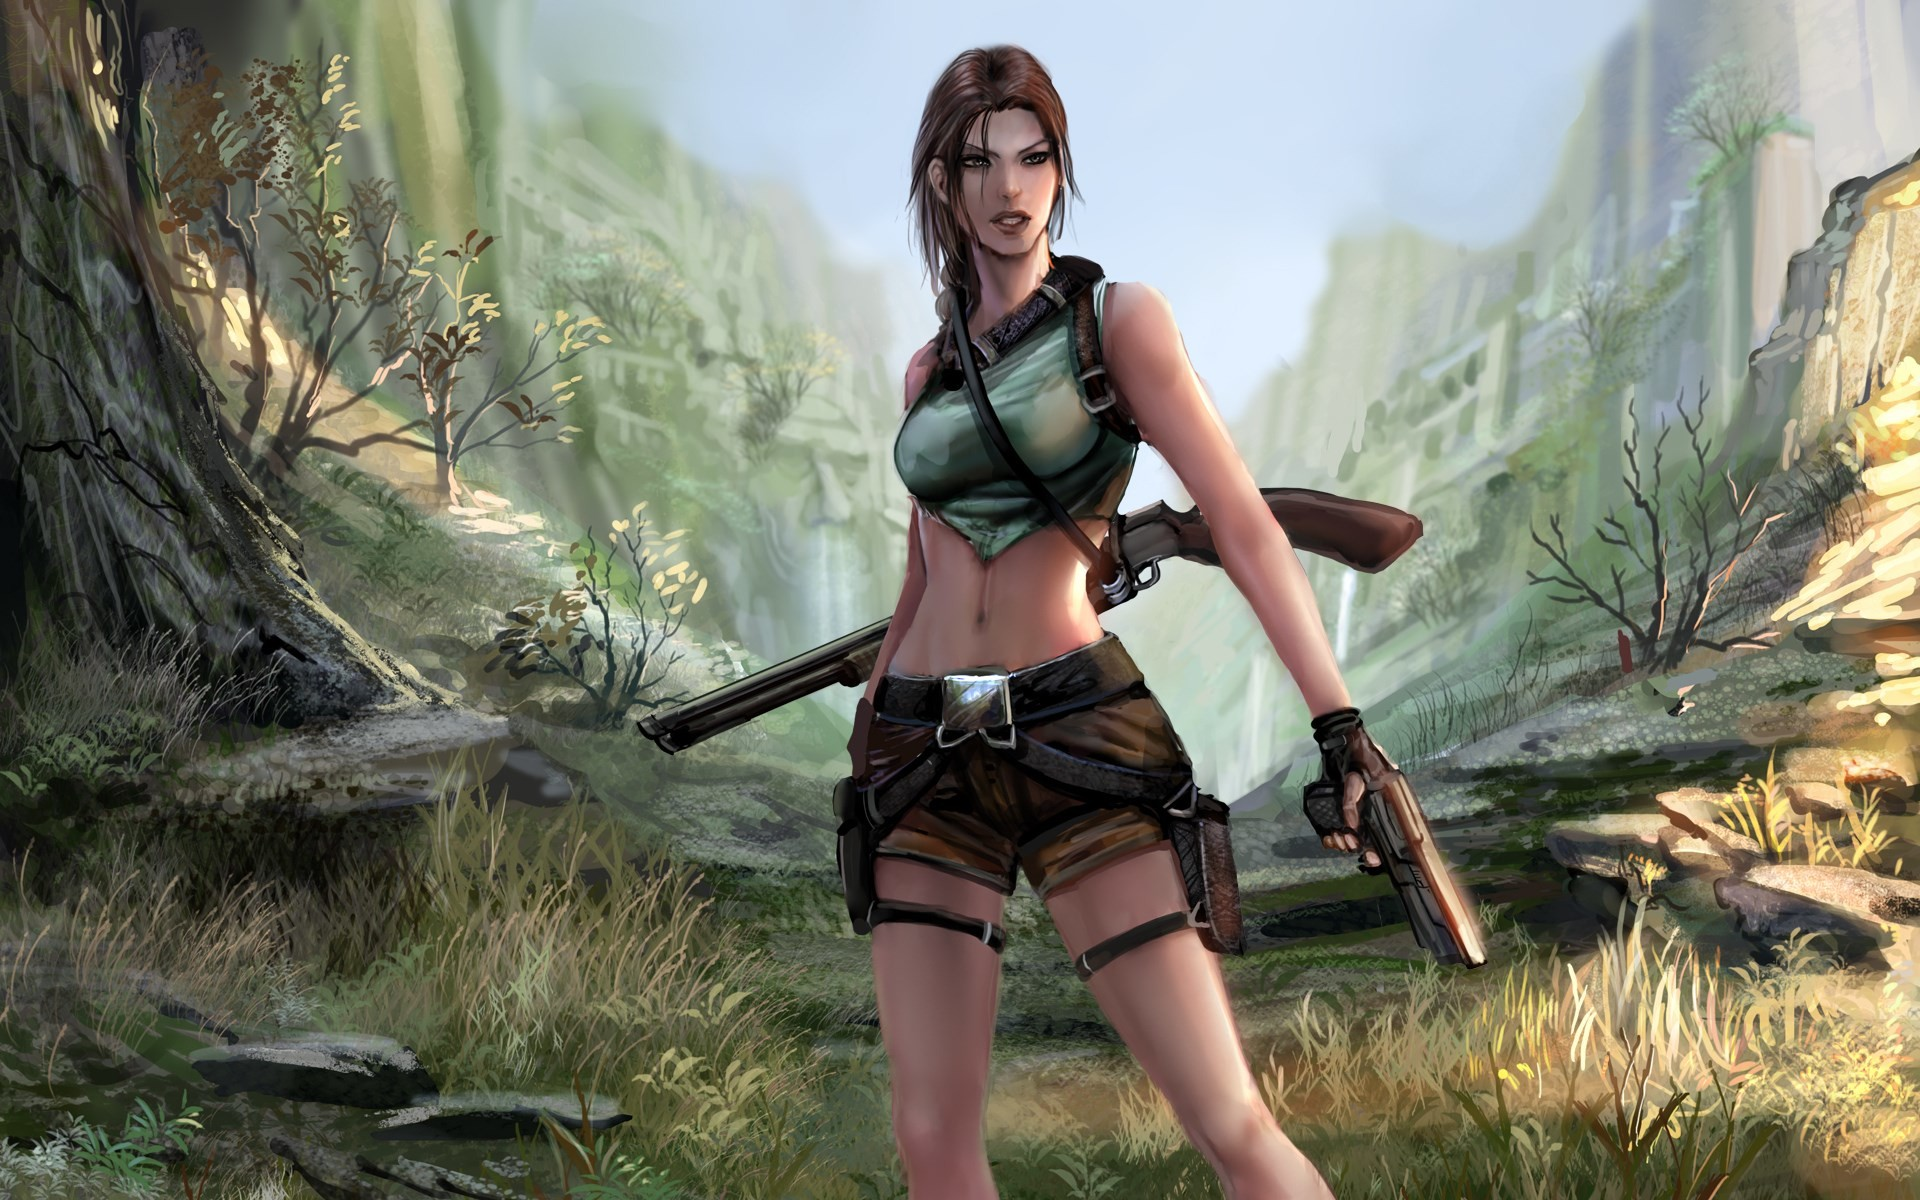 Game Girl Images. Top Game Girl Wallpapers